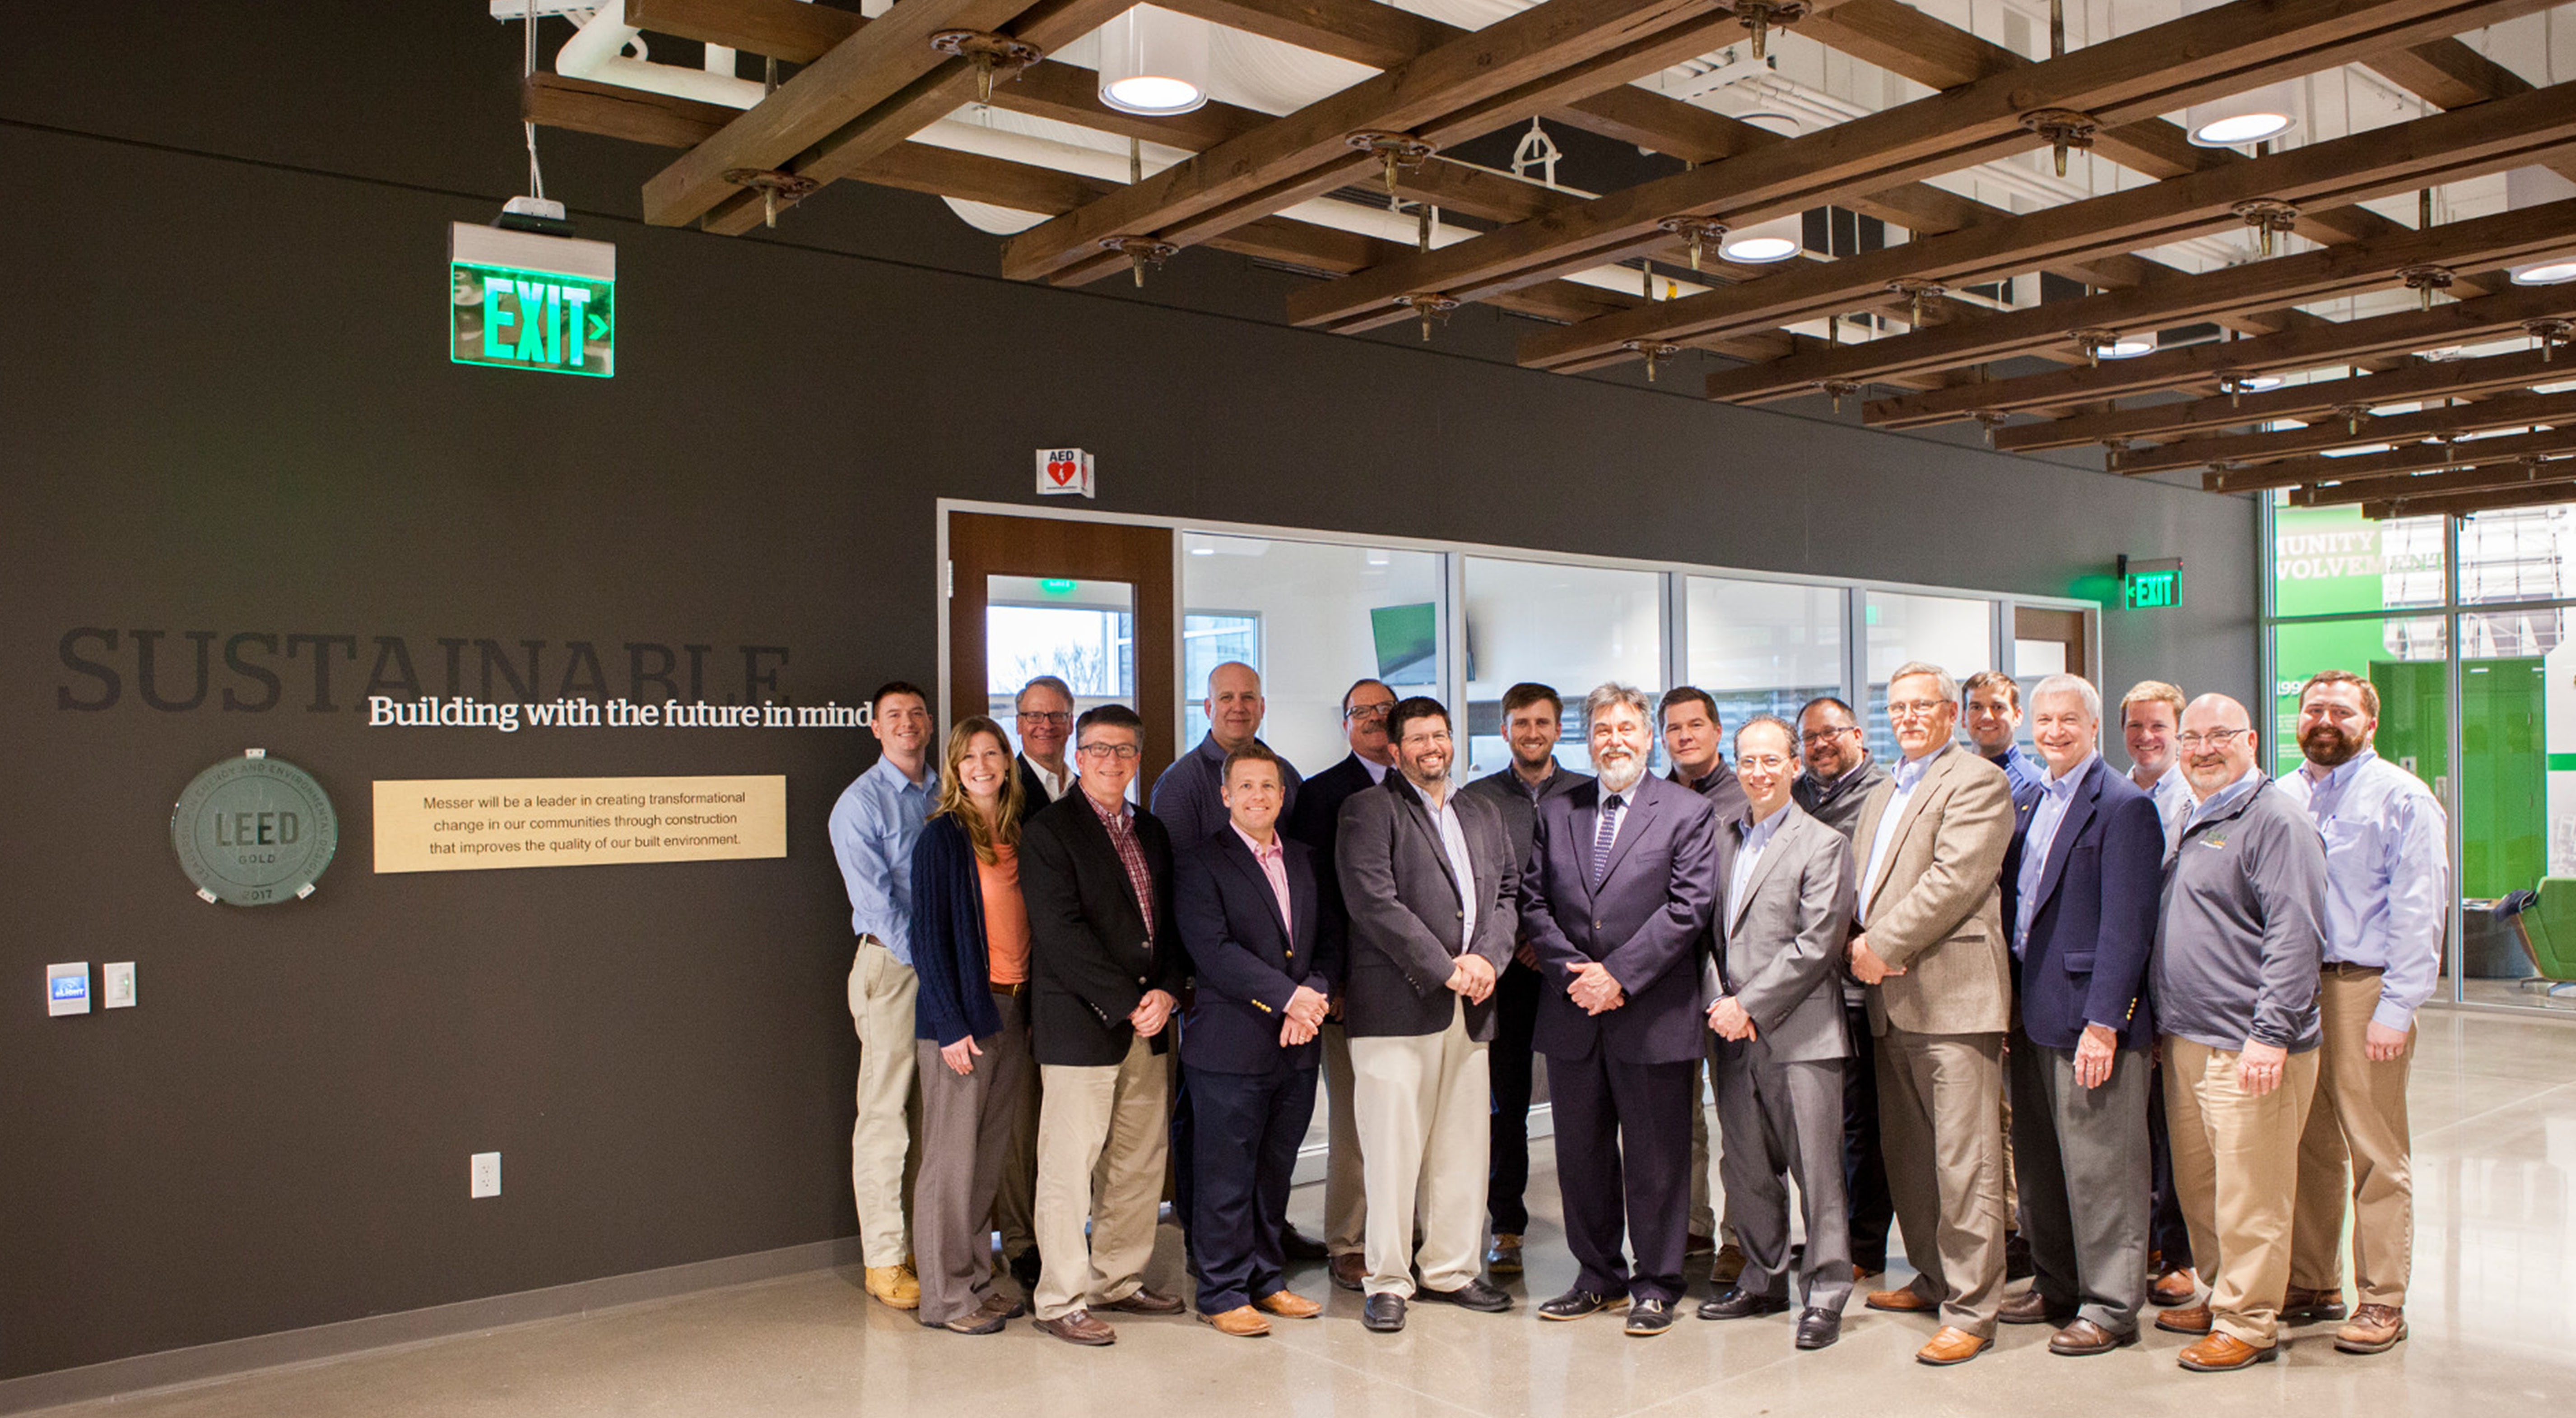 The project team stands beside signage talking about sustainability